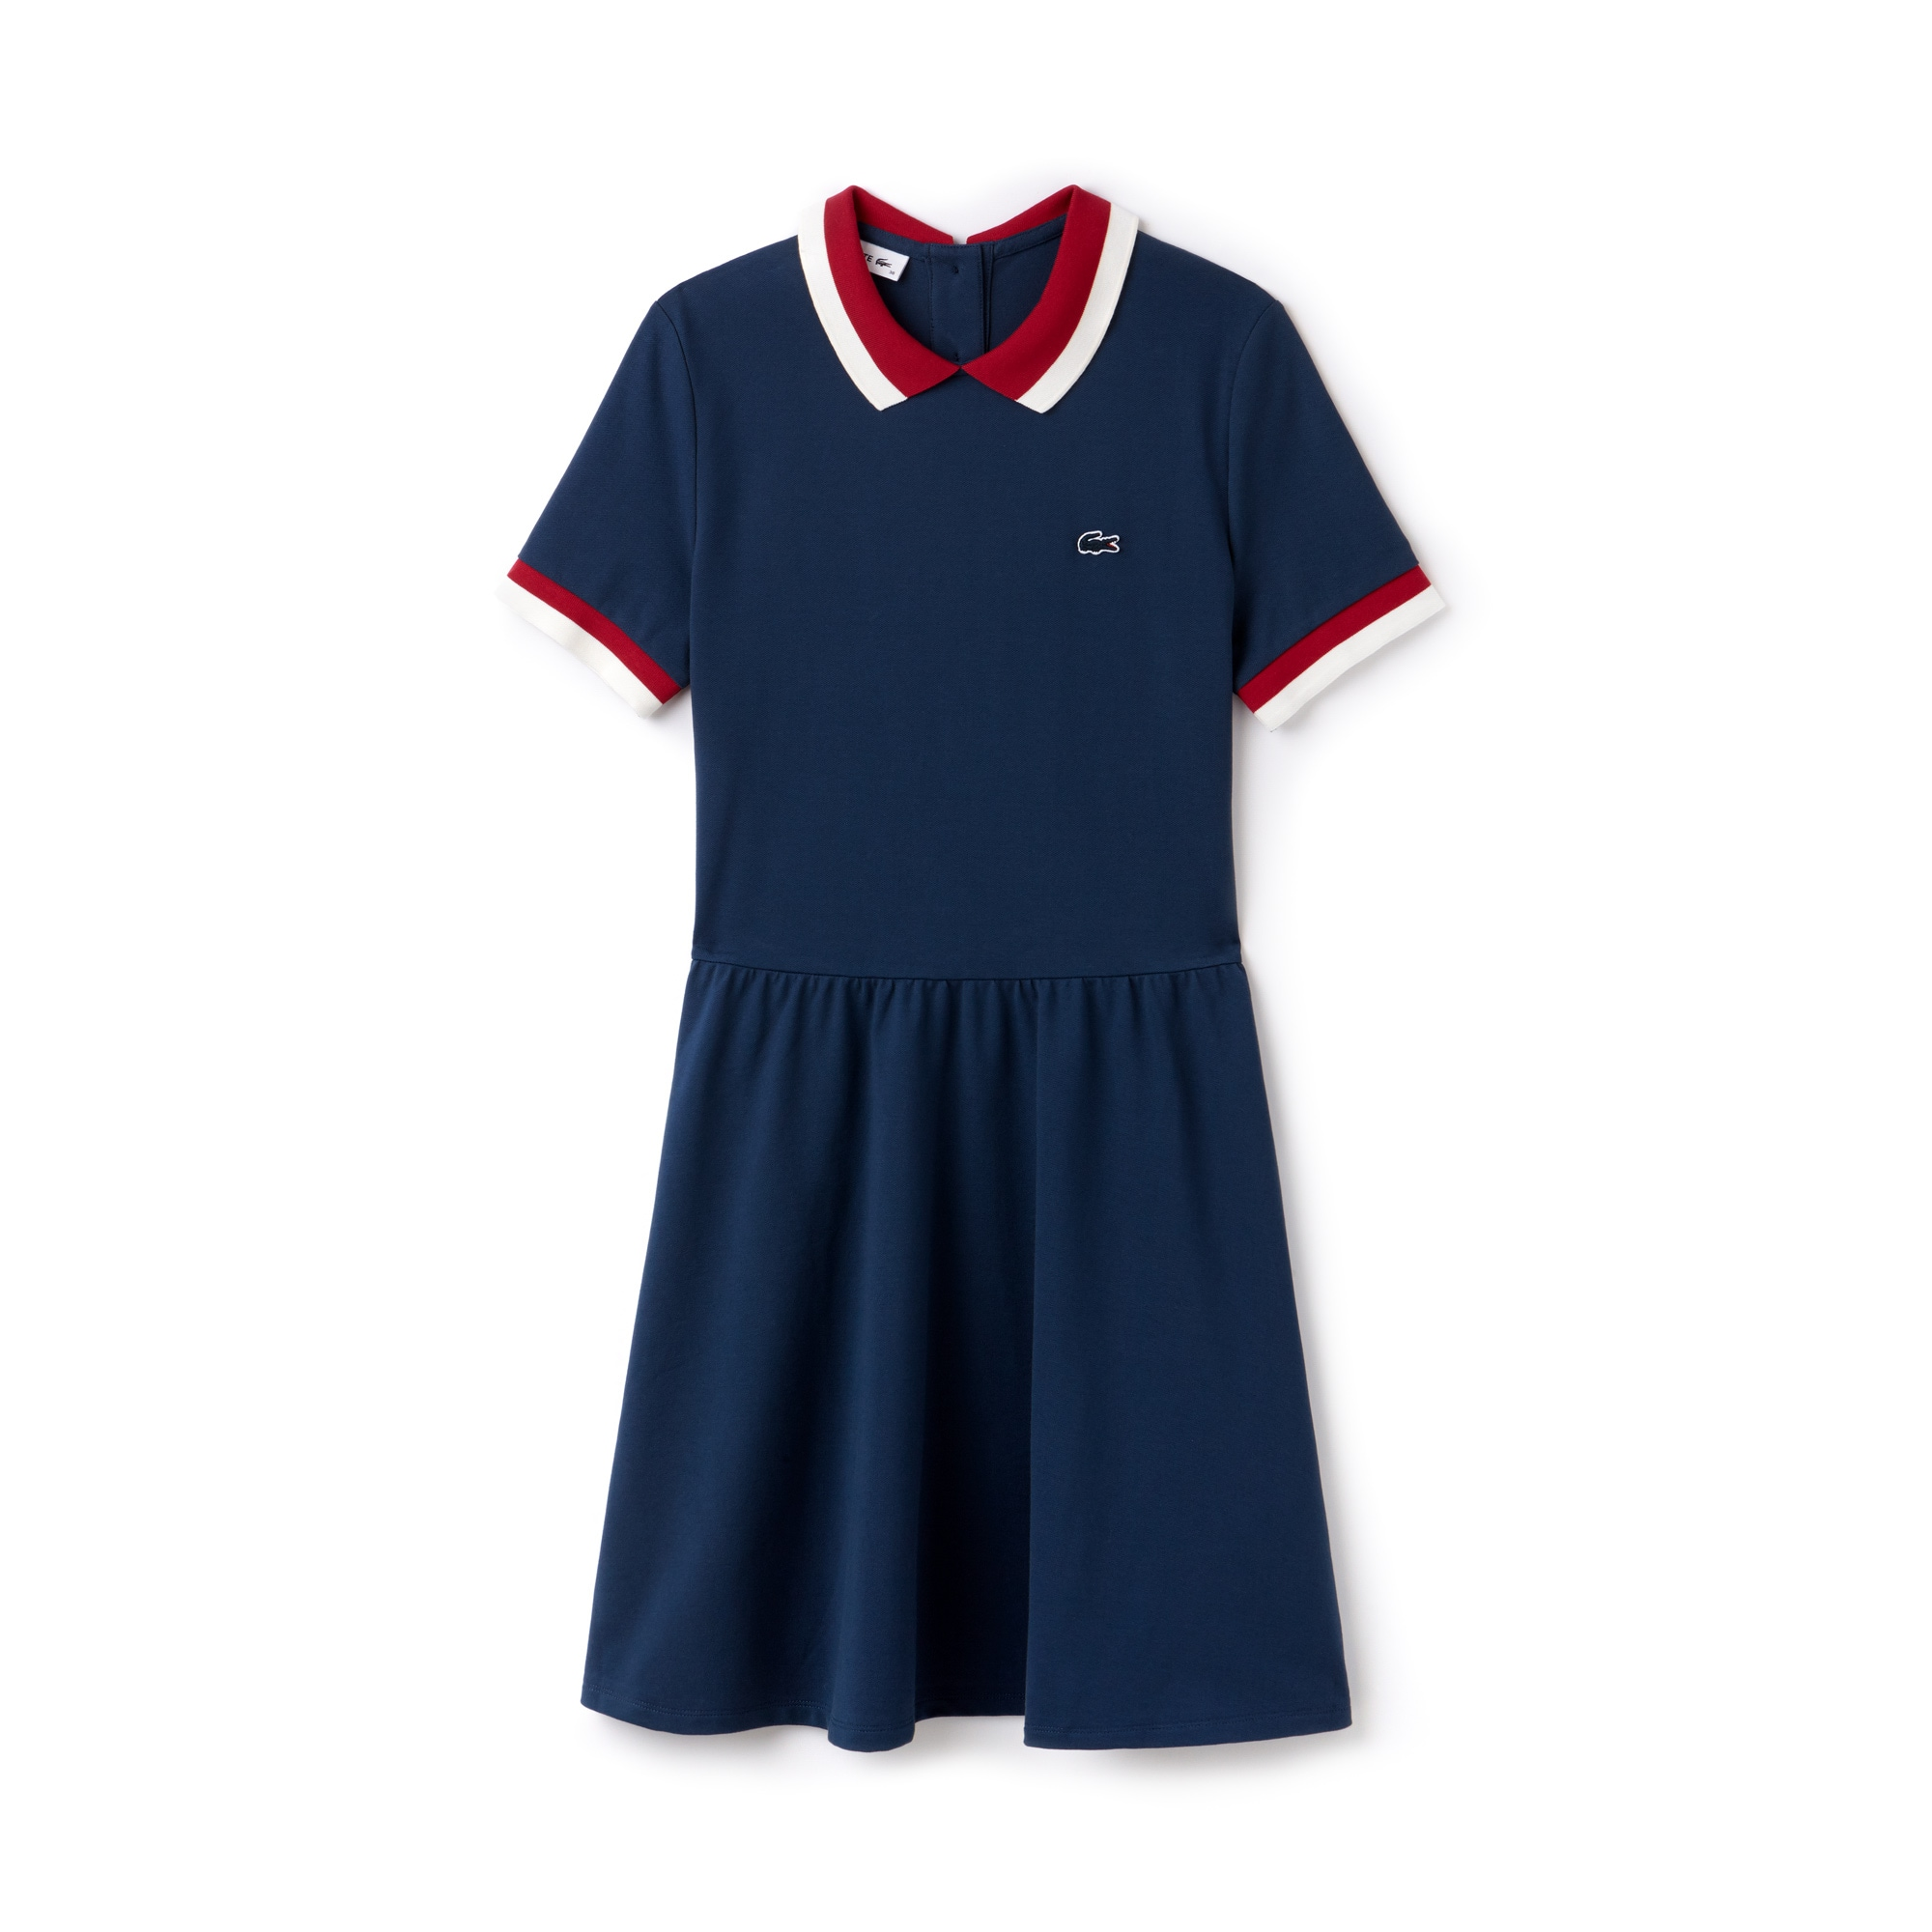 라코스테 콘트라스트 스트레치 미니 피케 폴로 원피스 Lacoste Womens Contrast Finishes Flared Stretch Mini Pique Polo Dress,azurite/persian red-flour